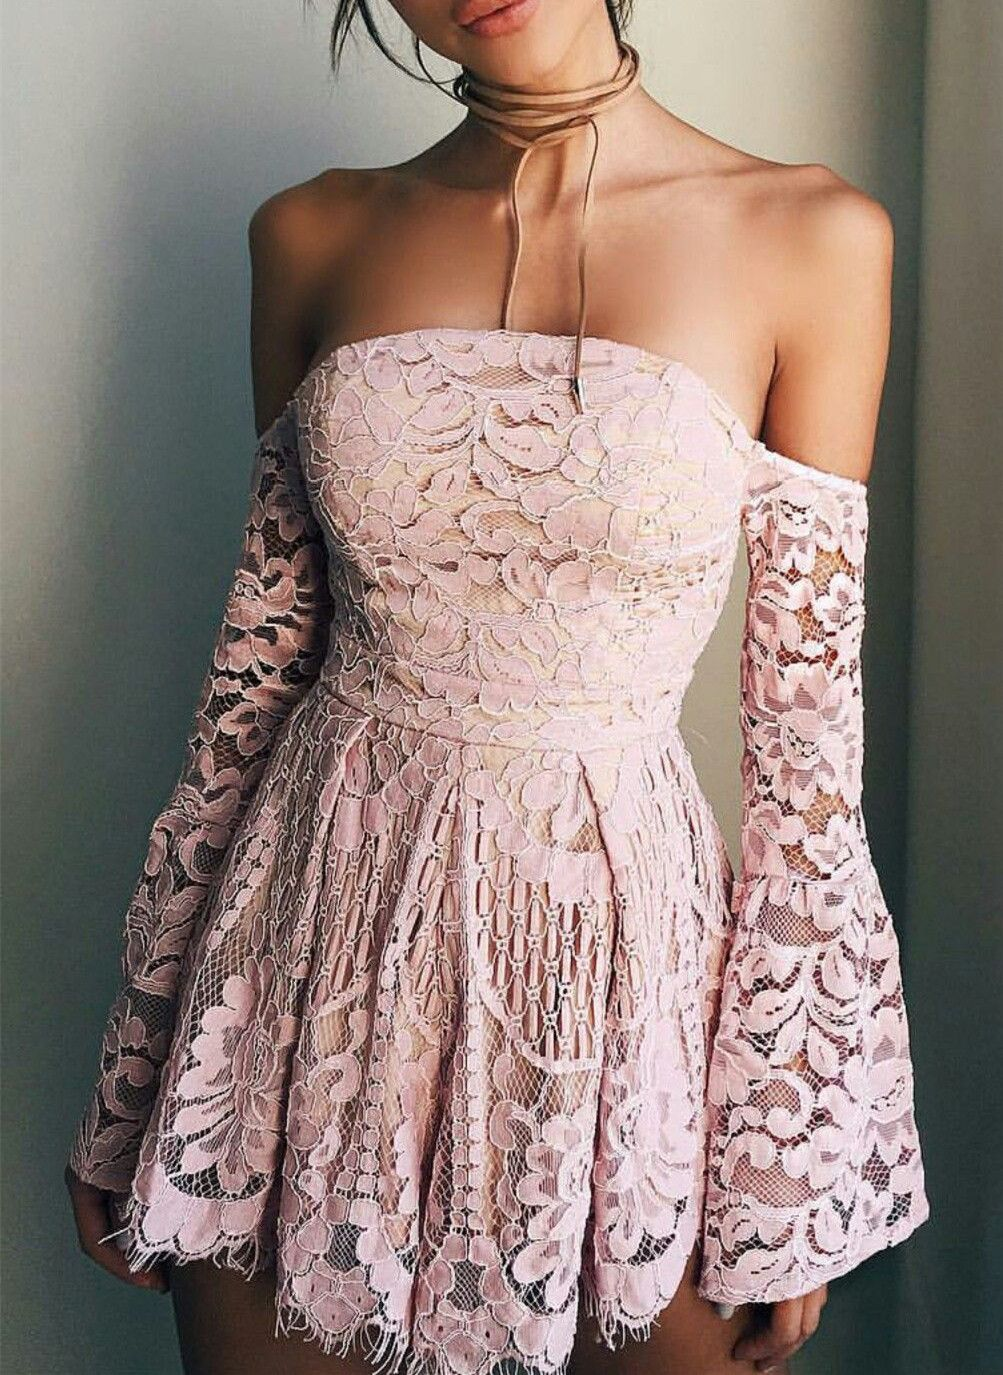 Hot Sale Blush Pink Lace Homecoming Dresses Off The Shoulder Long Sleeves M Long Sleeve Homecoming Dresses Lace Homecoming Dresses Short Strapless Prom Dresses [ 1375 x 1003 Pixel ]